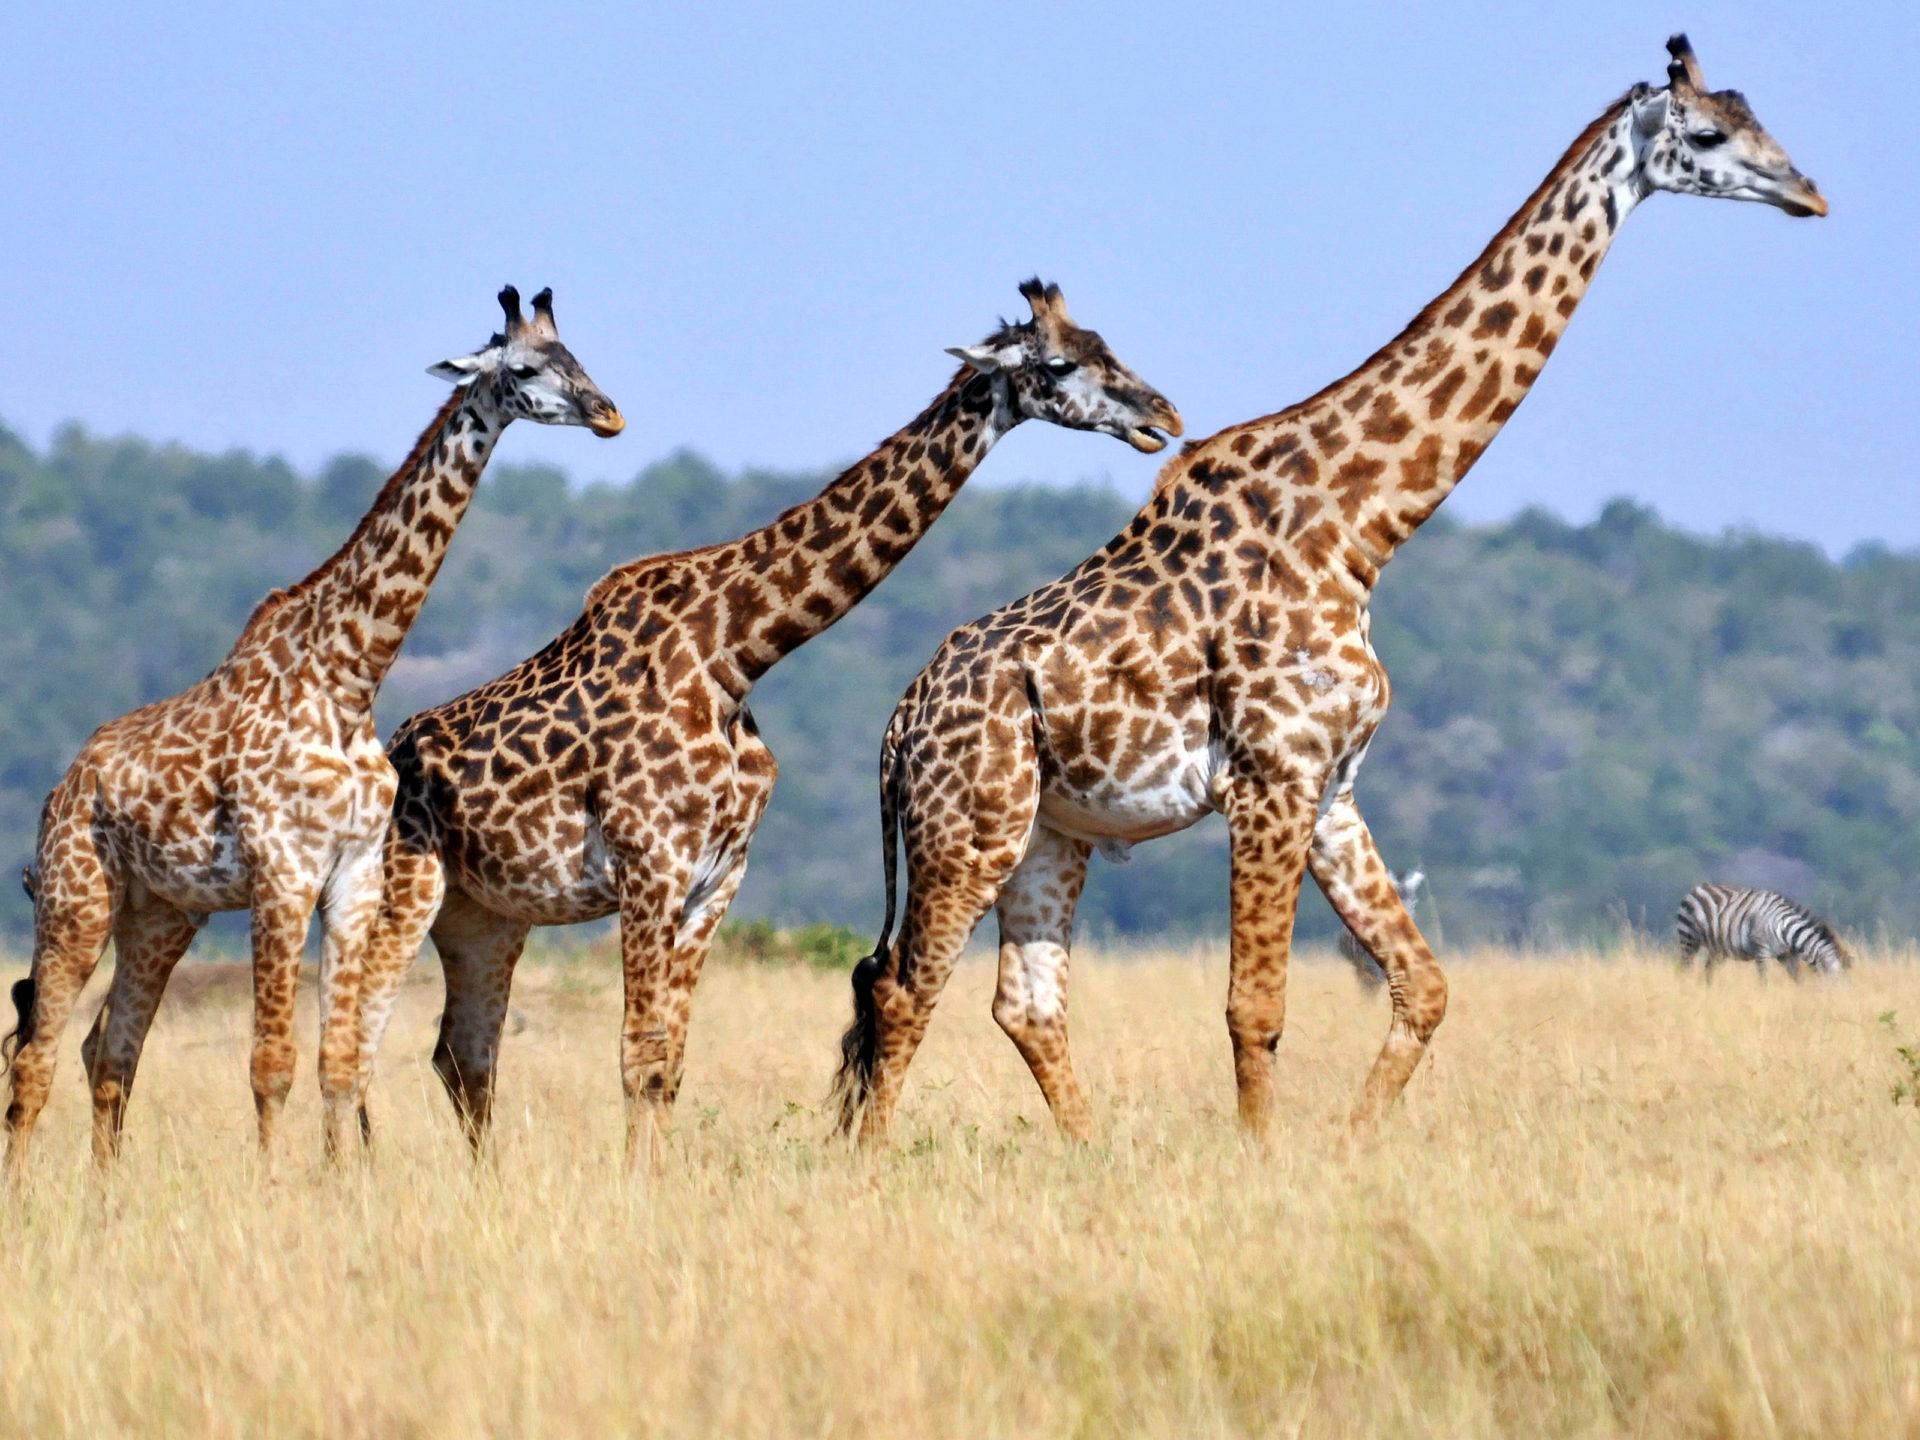 Animal Wild Wallpaper Hd 3d Three Giraffes Animals With Long Neck Striped Body Casts